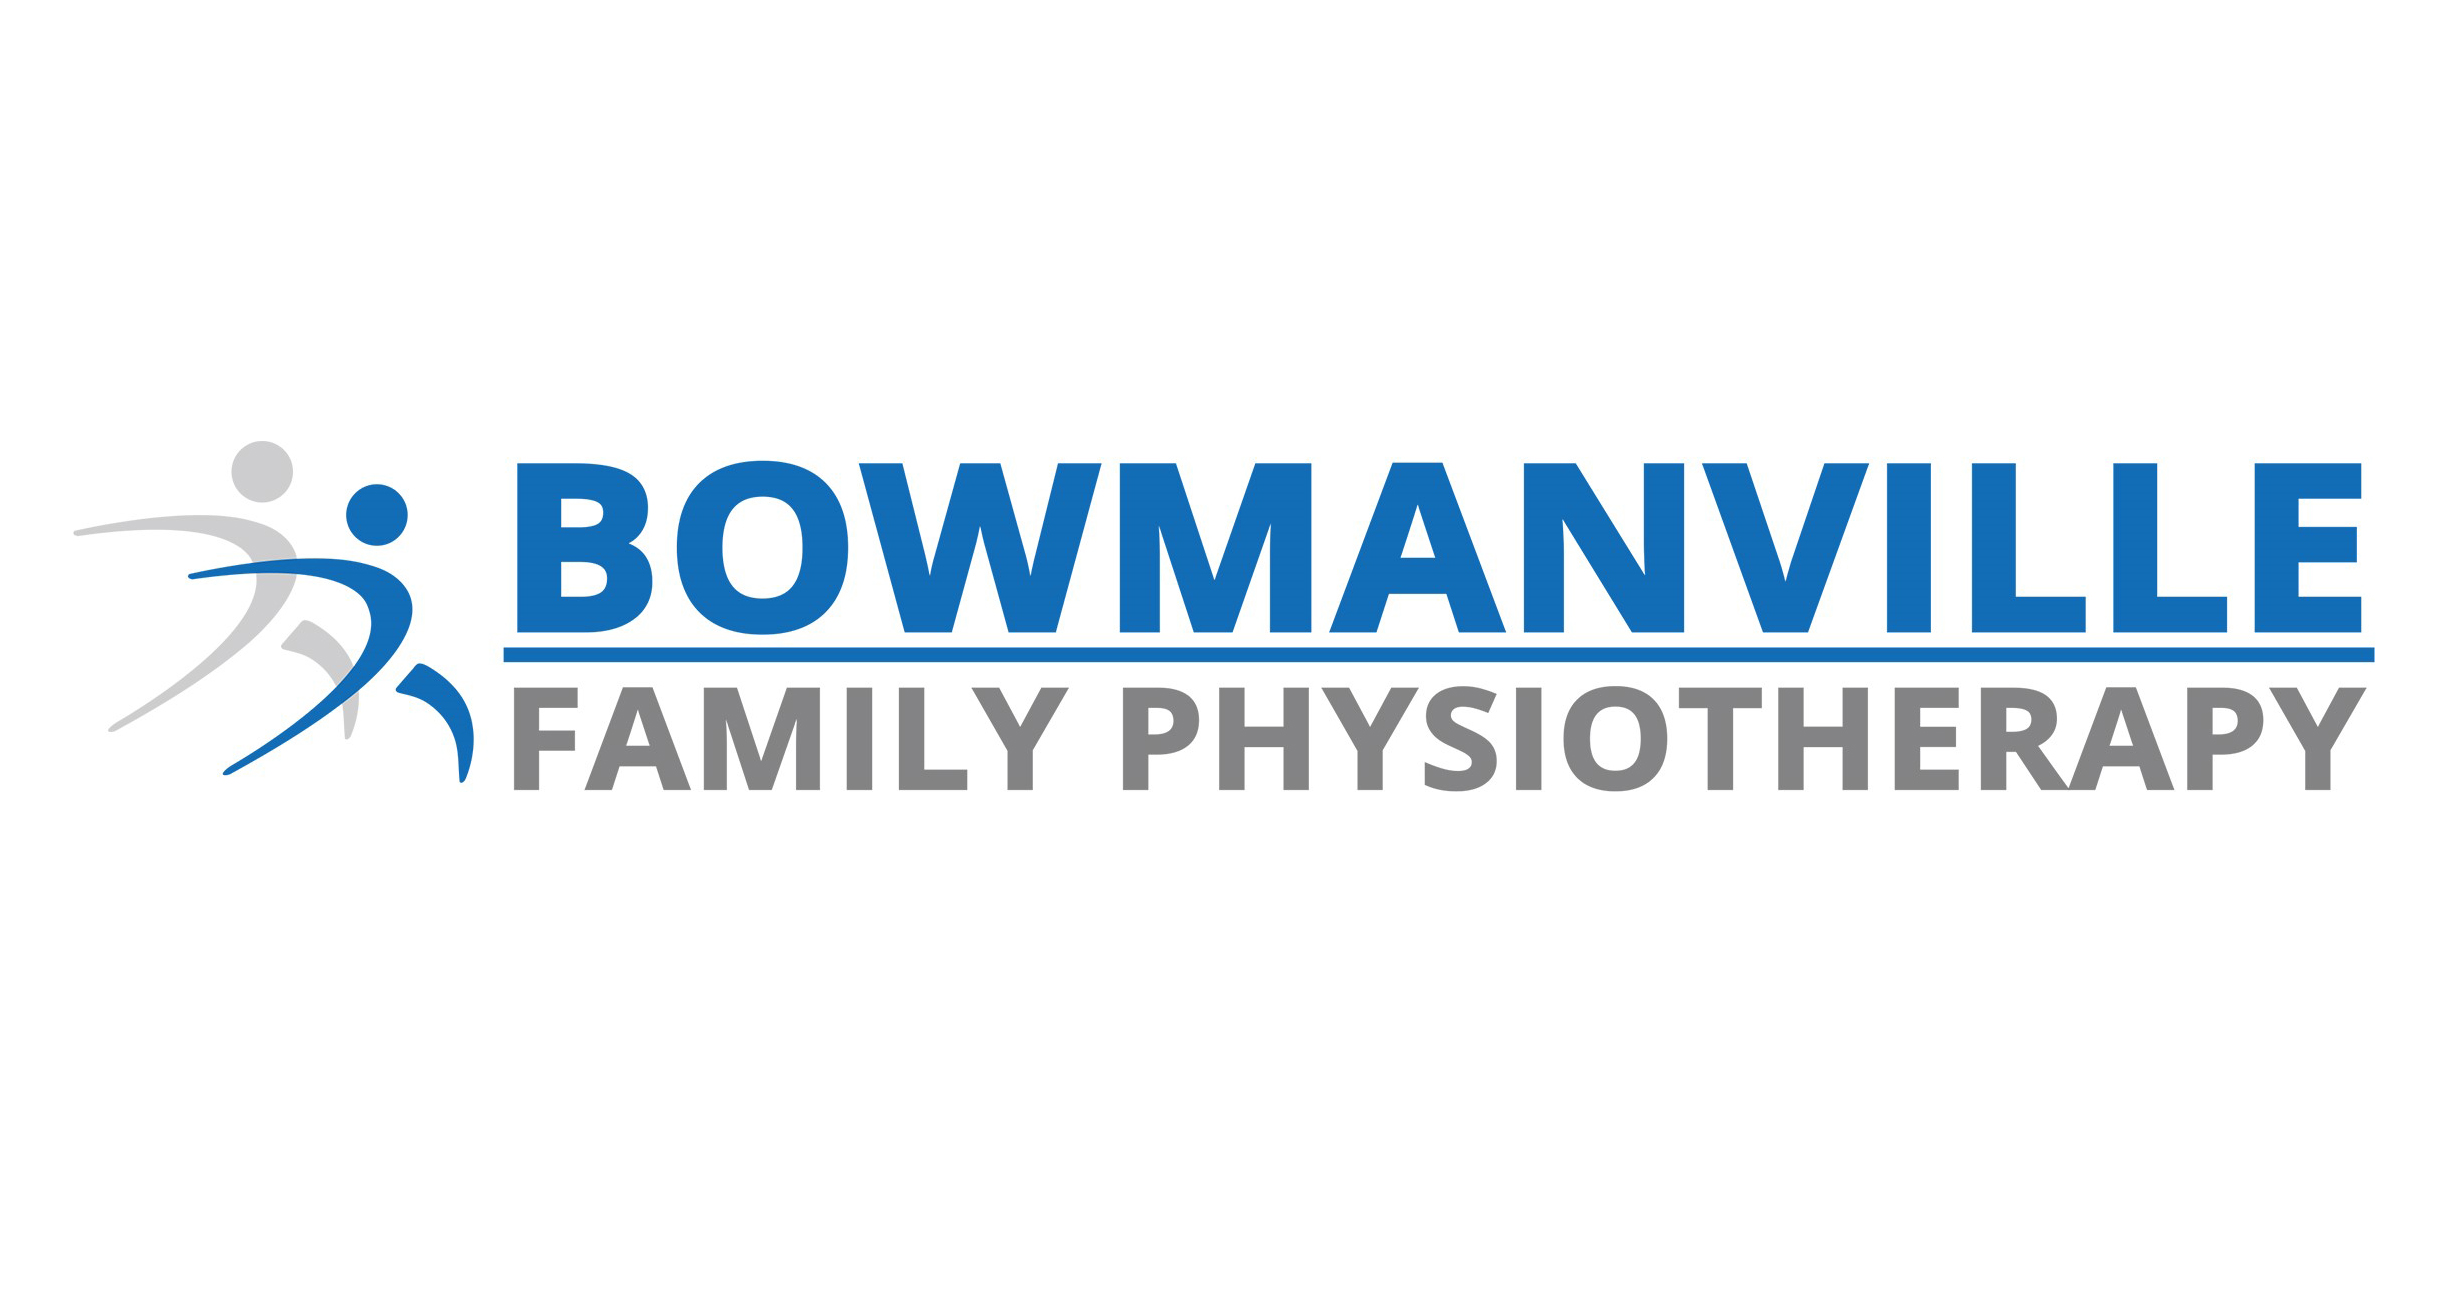 bowmanville family physiotherapy